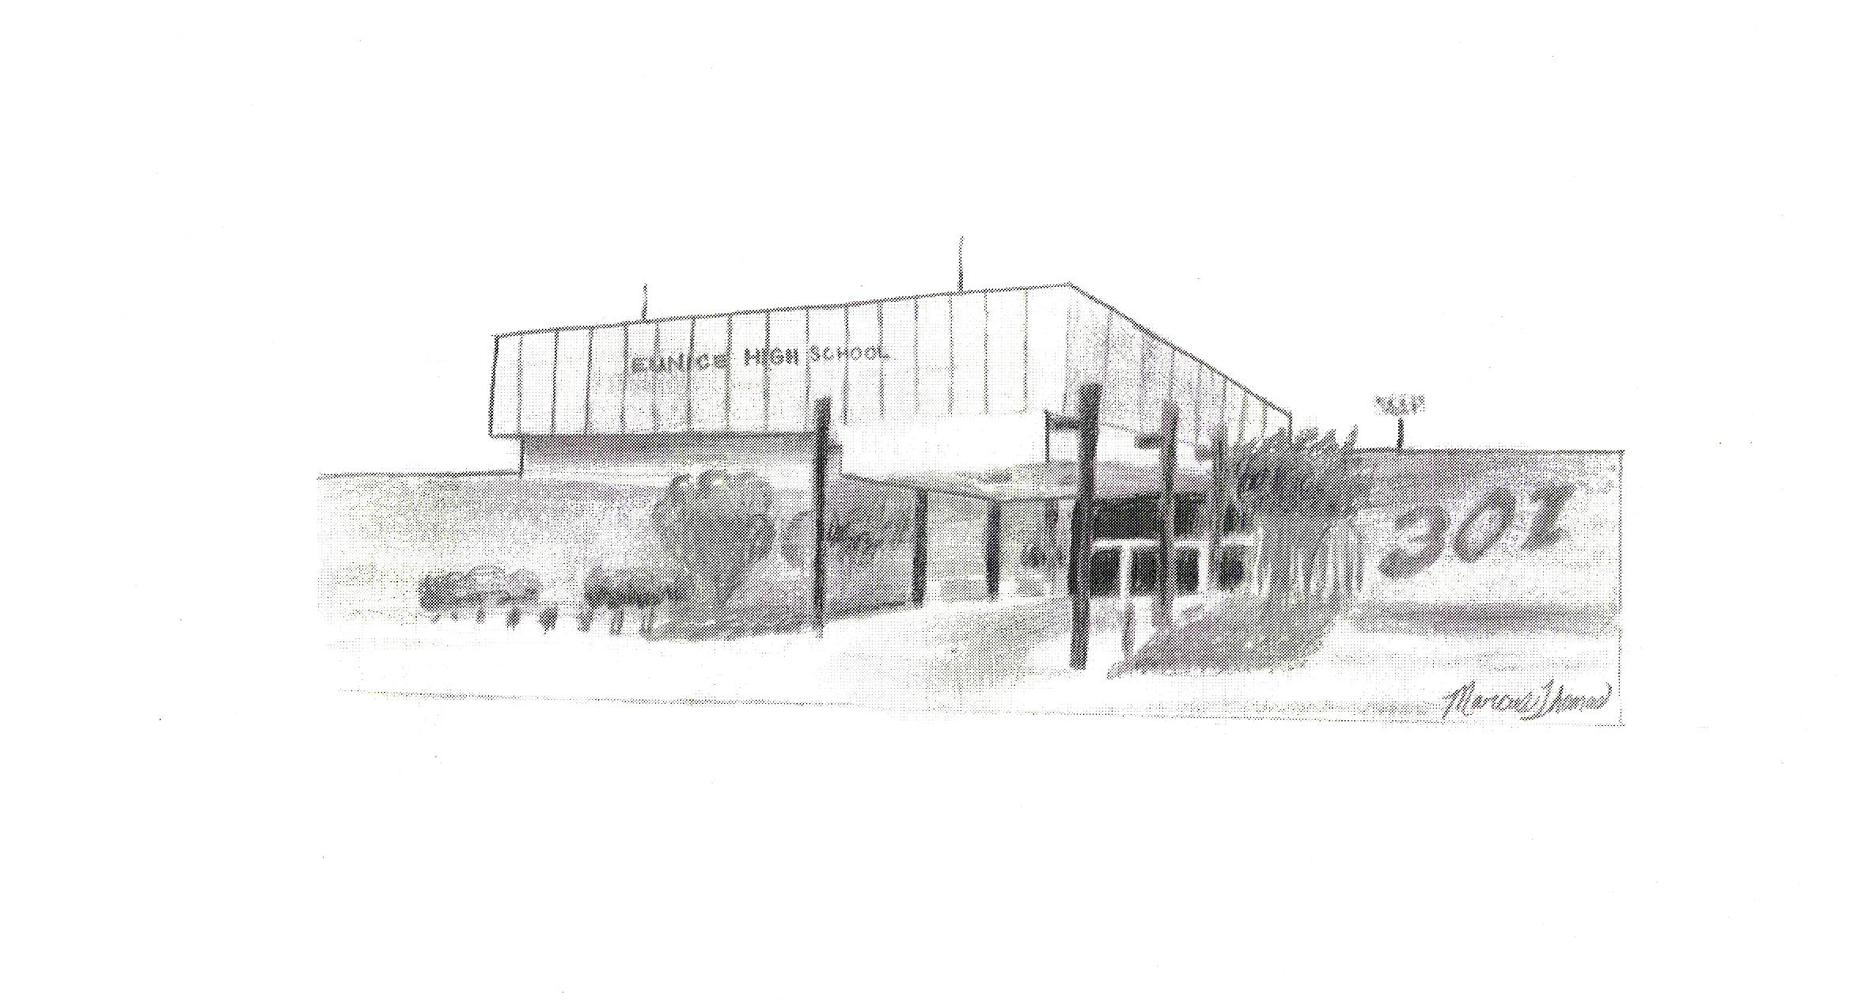 Drawing of the school